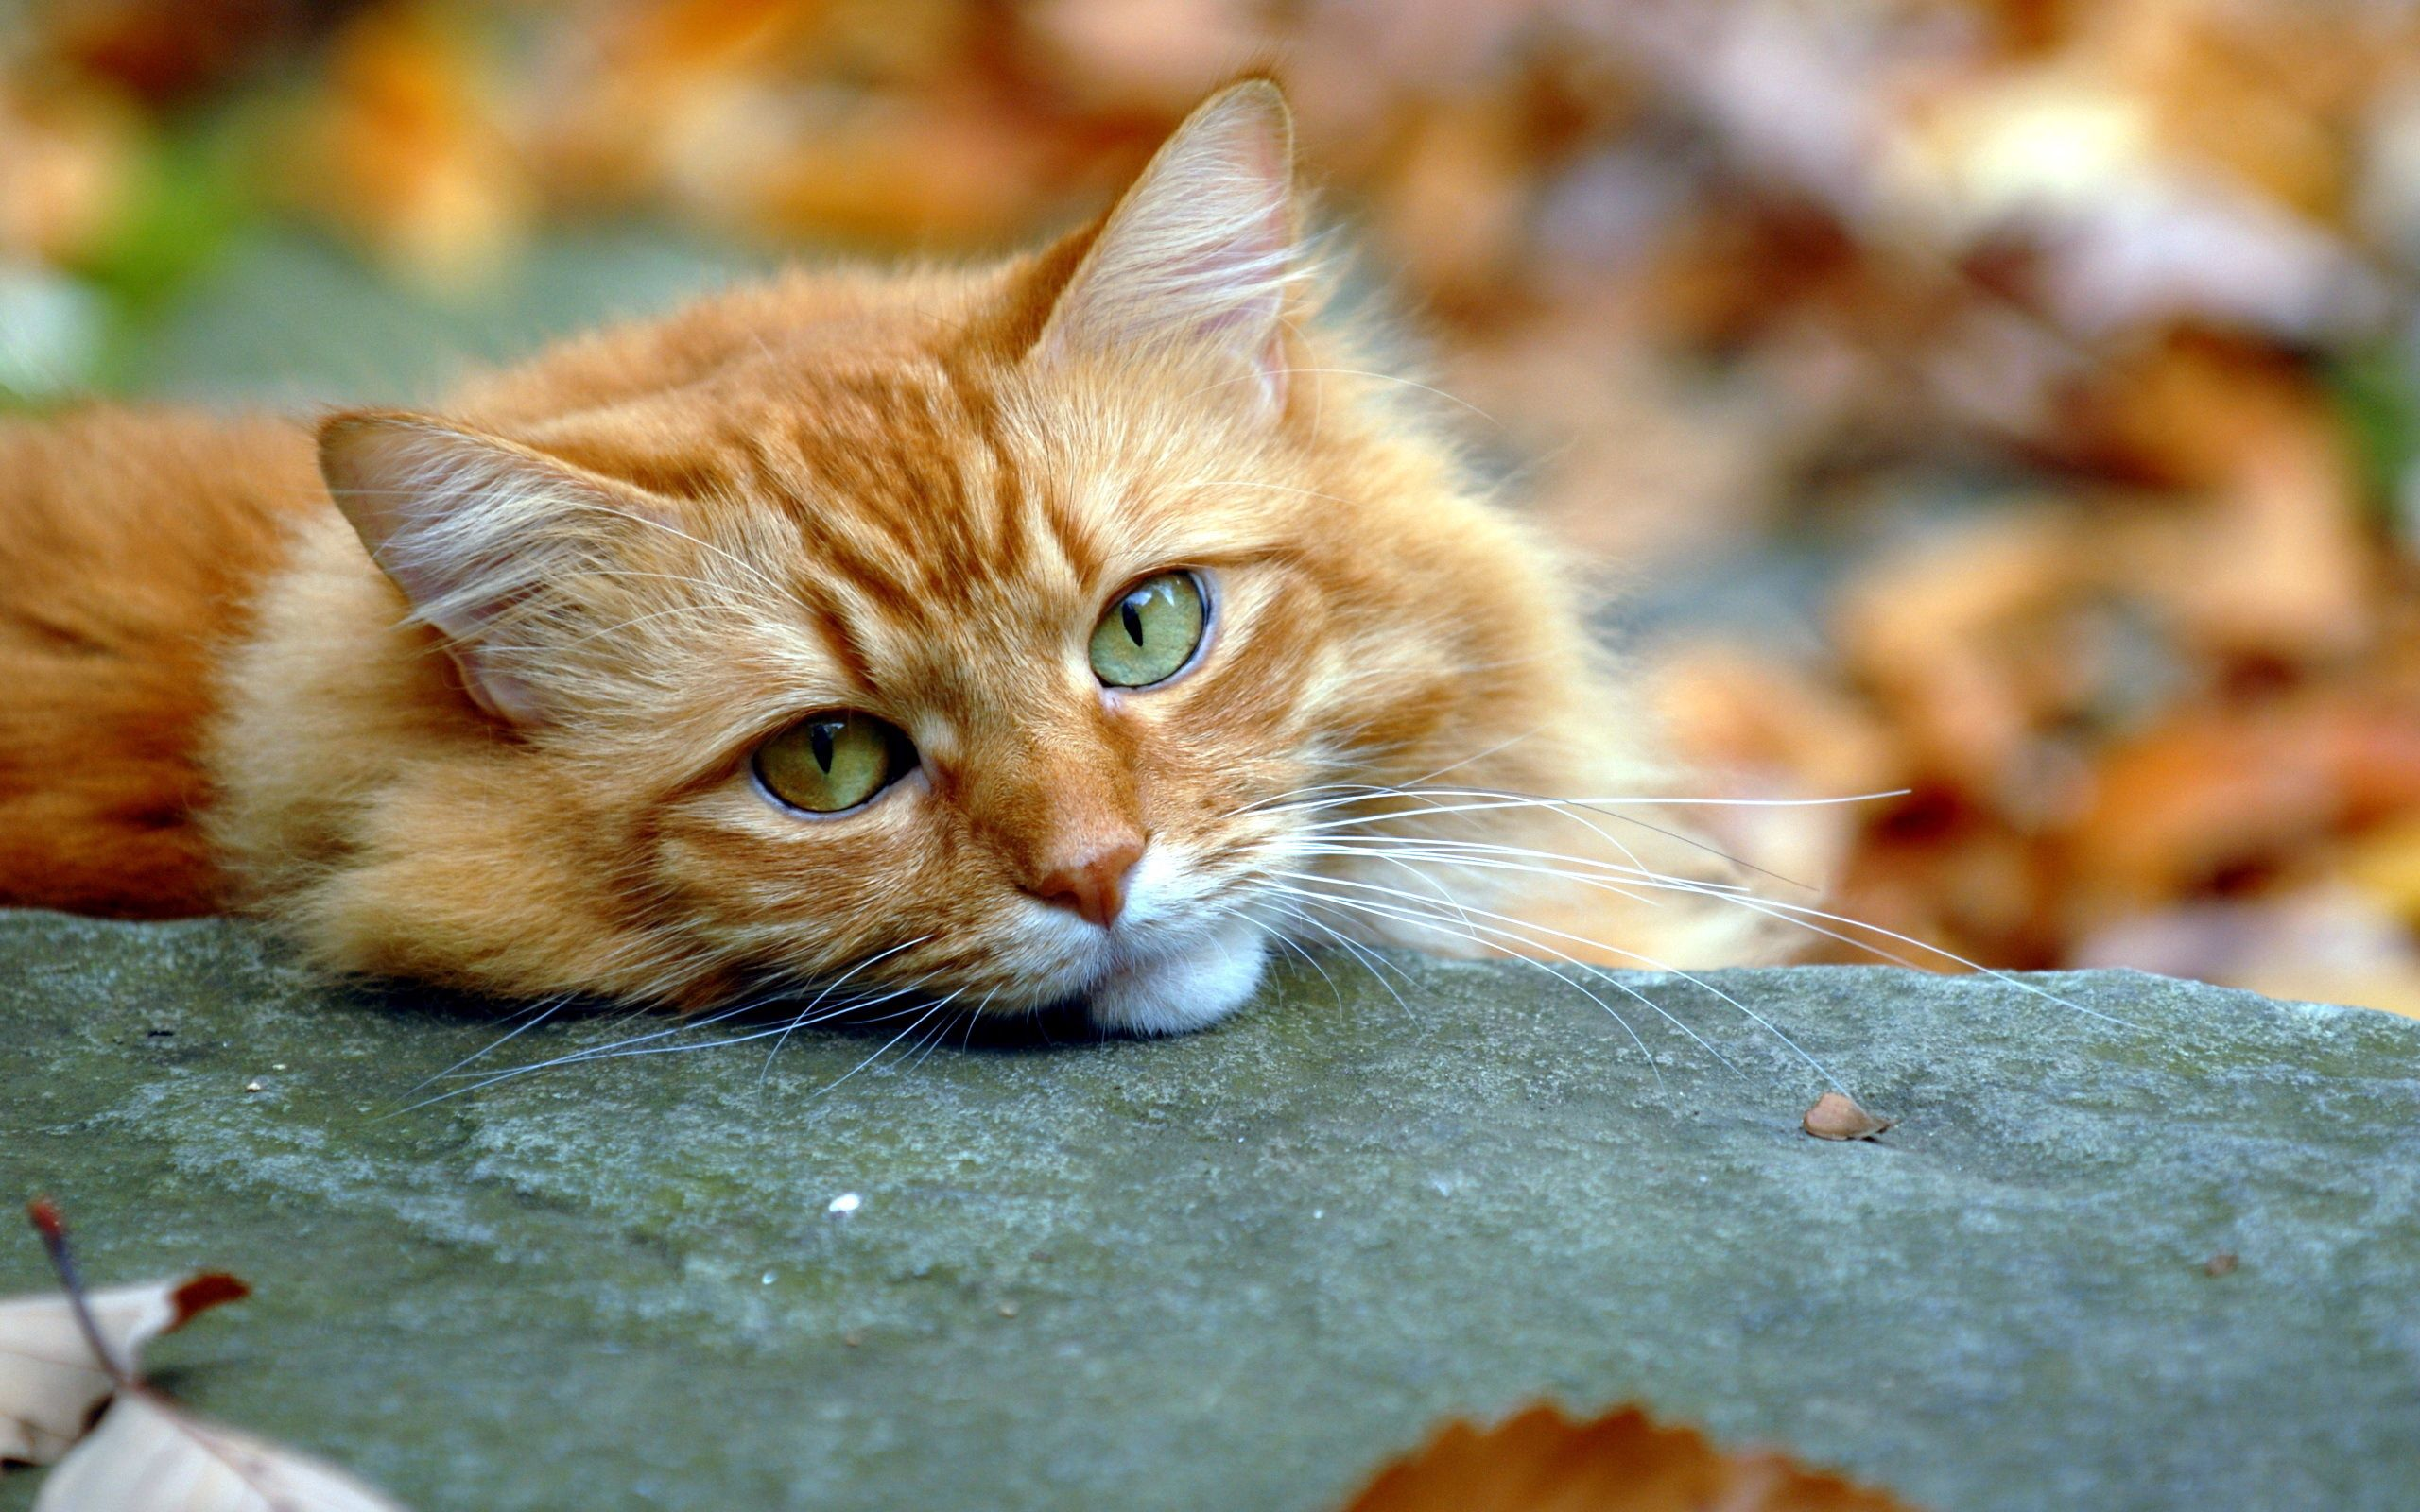 113499 download wallpaper Animals, Sight, Opinion, Cat, Autumn, Redhead screensavers and pictures for free